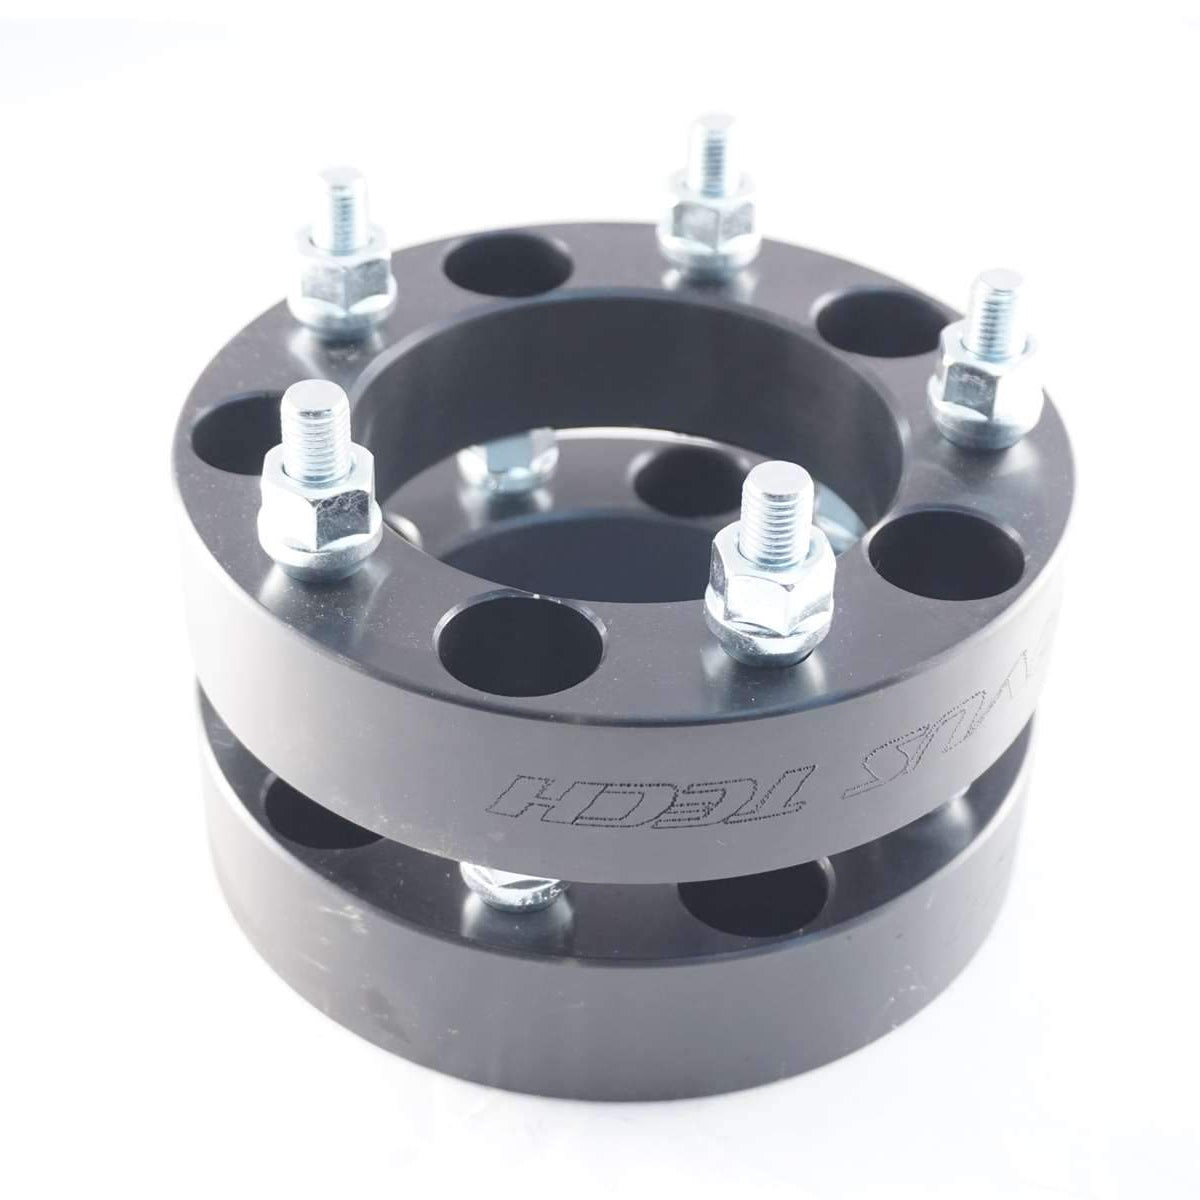 Wheel Adapters: 5x114.3 to 5x114.3 - 38mm